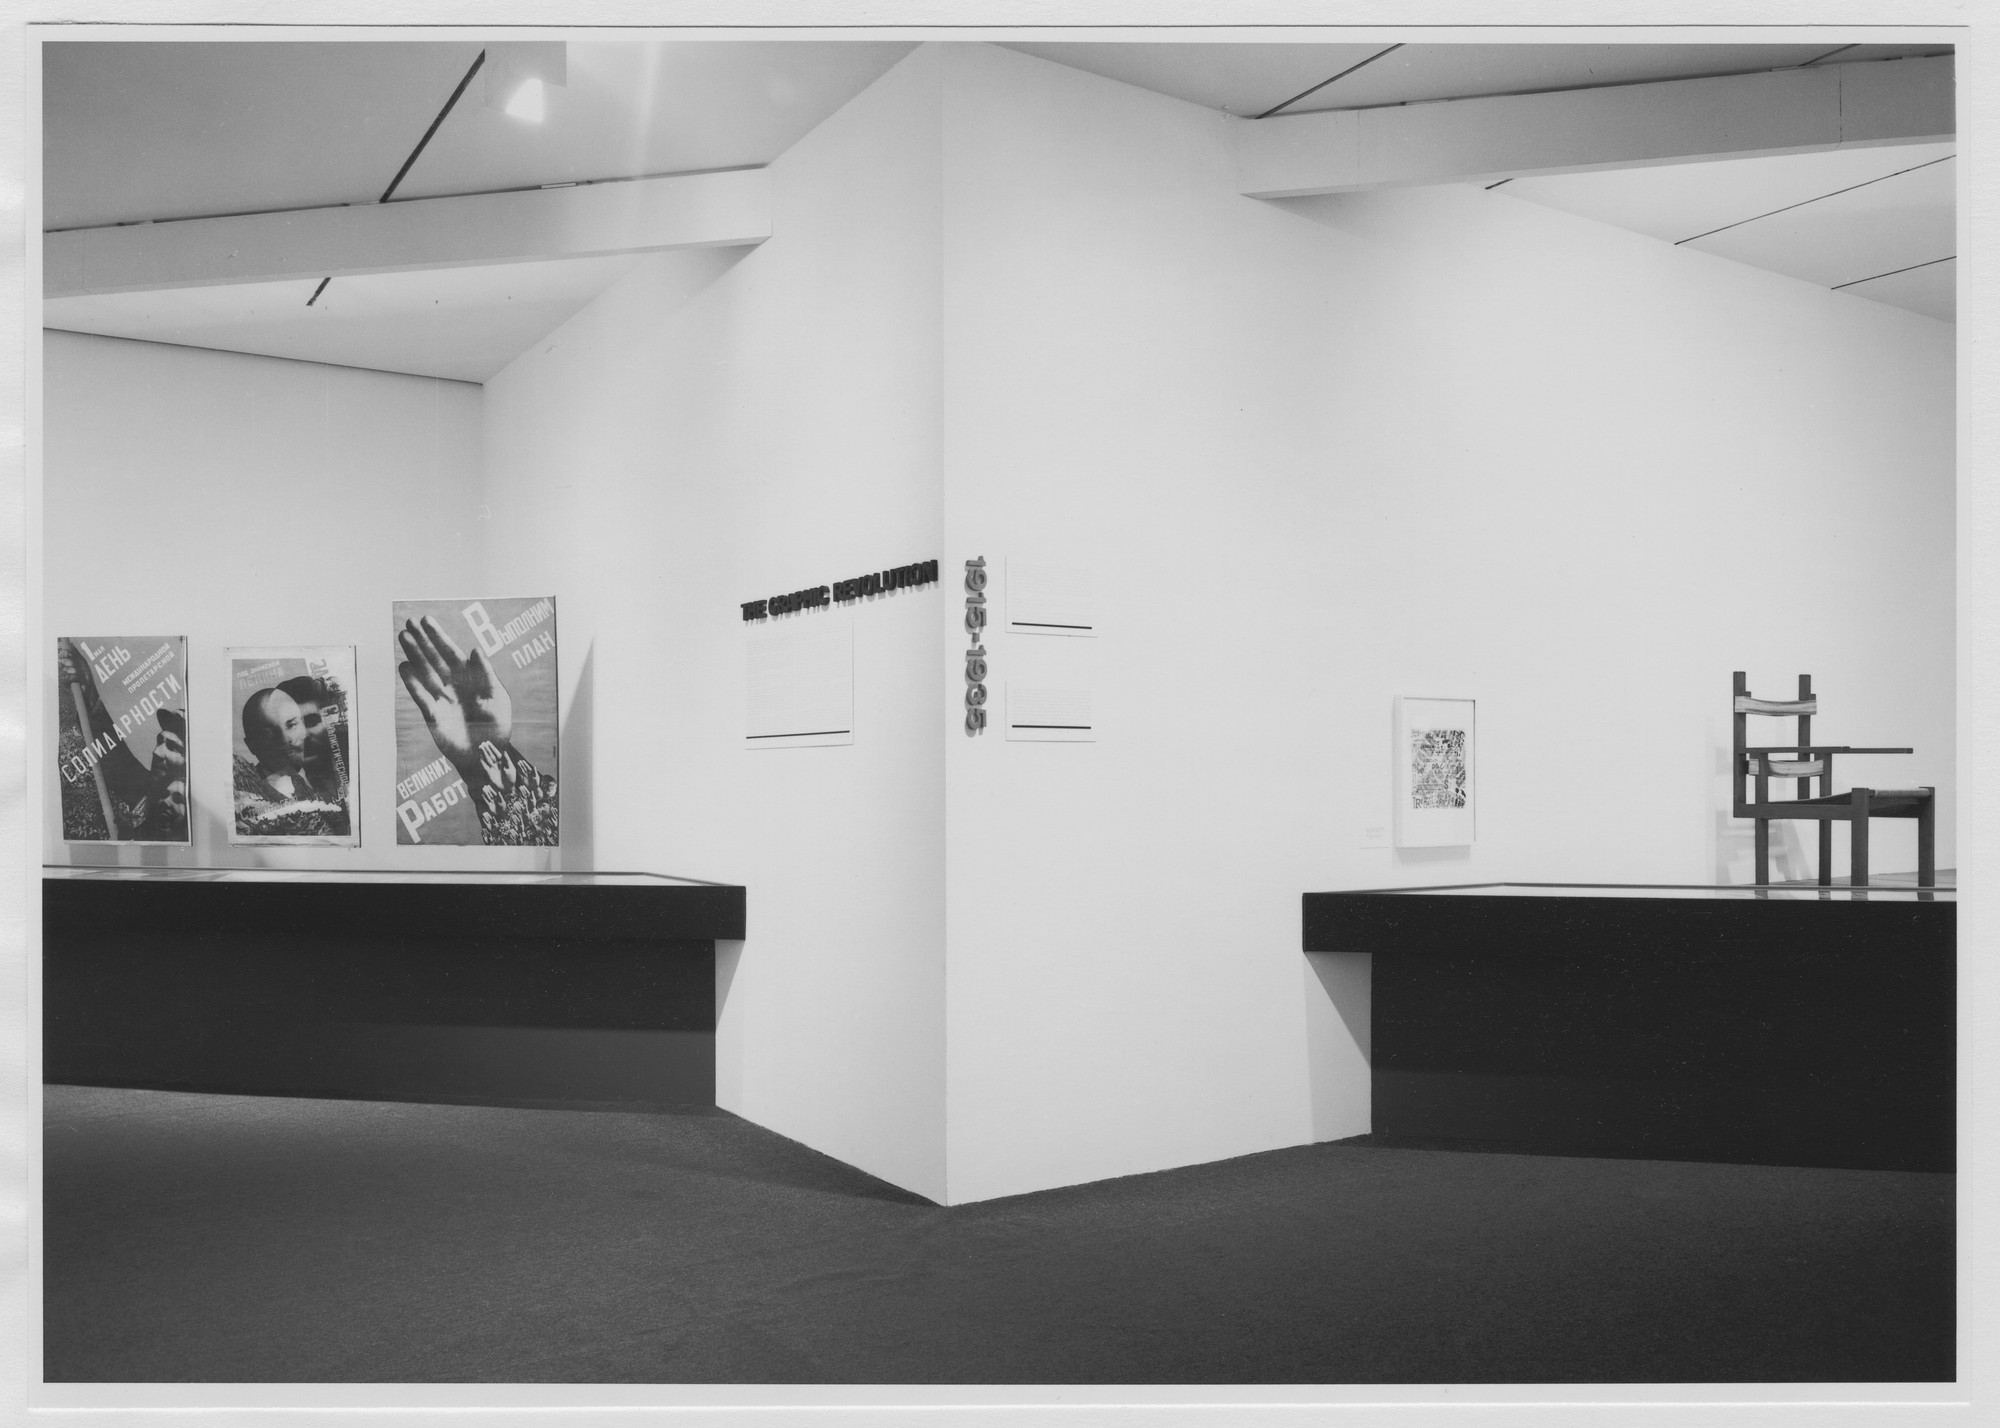 "Installation view of the exhibition, ""The Graphic Revolution: 1915-1935."" August 5, 1977–October 31, 1977. Photographic Archive. The Museum of Modern Art Archives, New York. IN1182.1. Photograph by Katherine Keller."